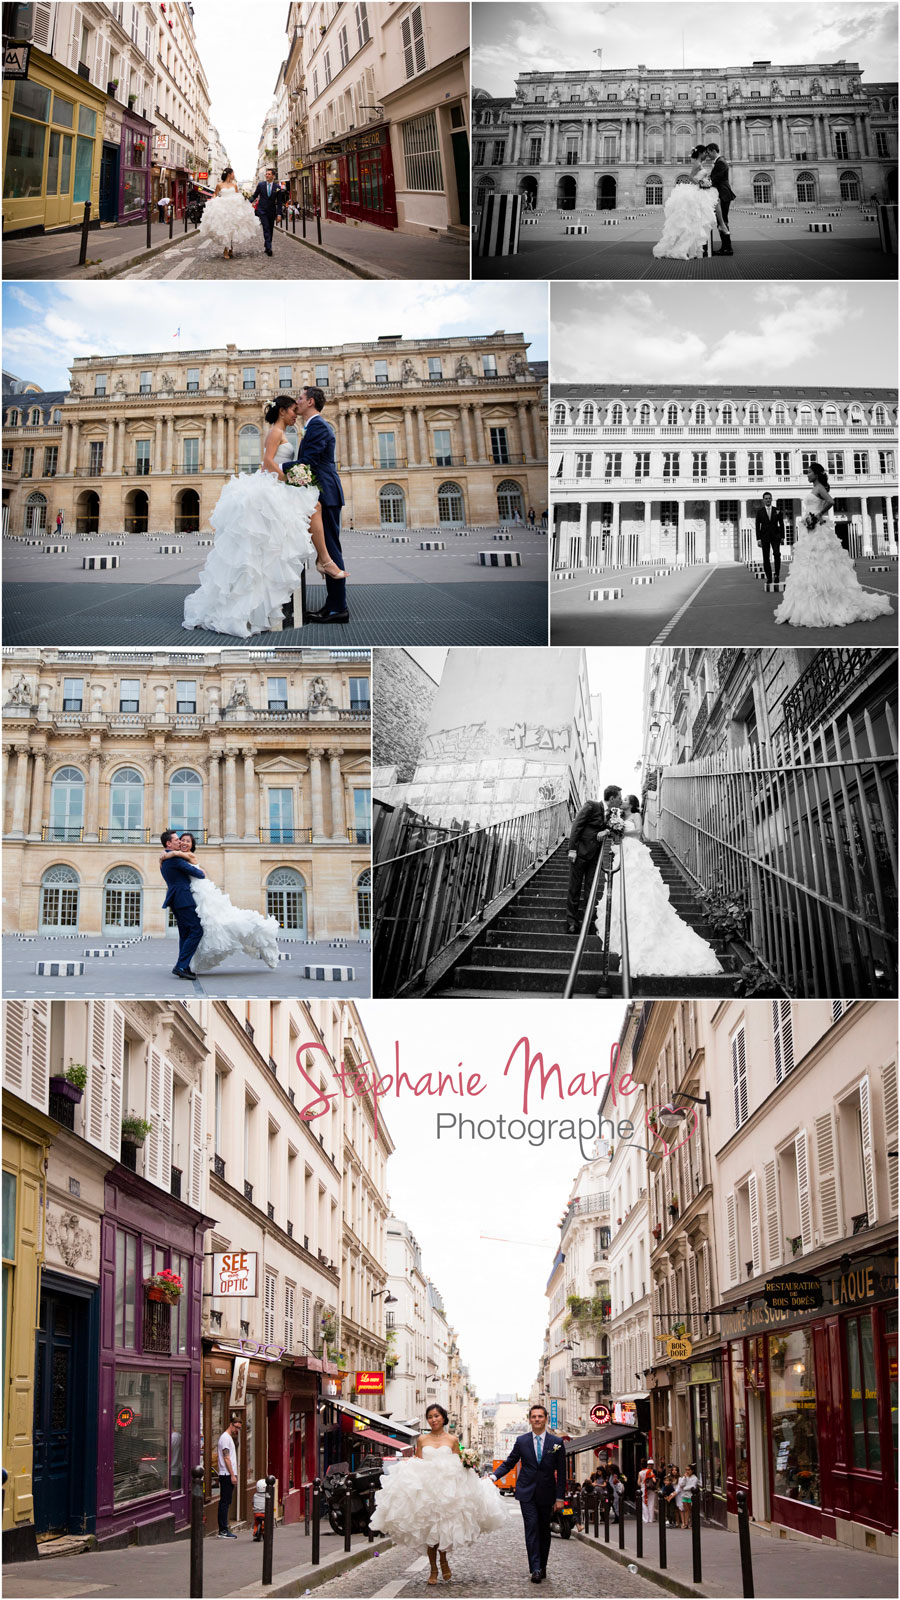 photographe.colonne.de.burenes.couples.mur.des.je.taime.couples.paris